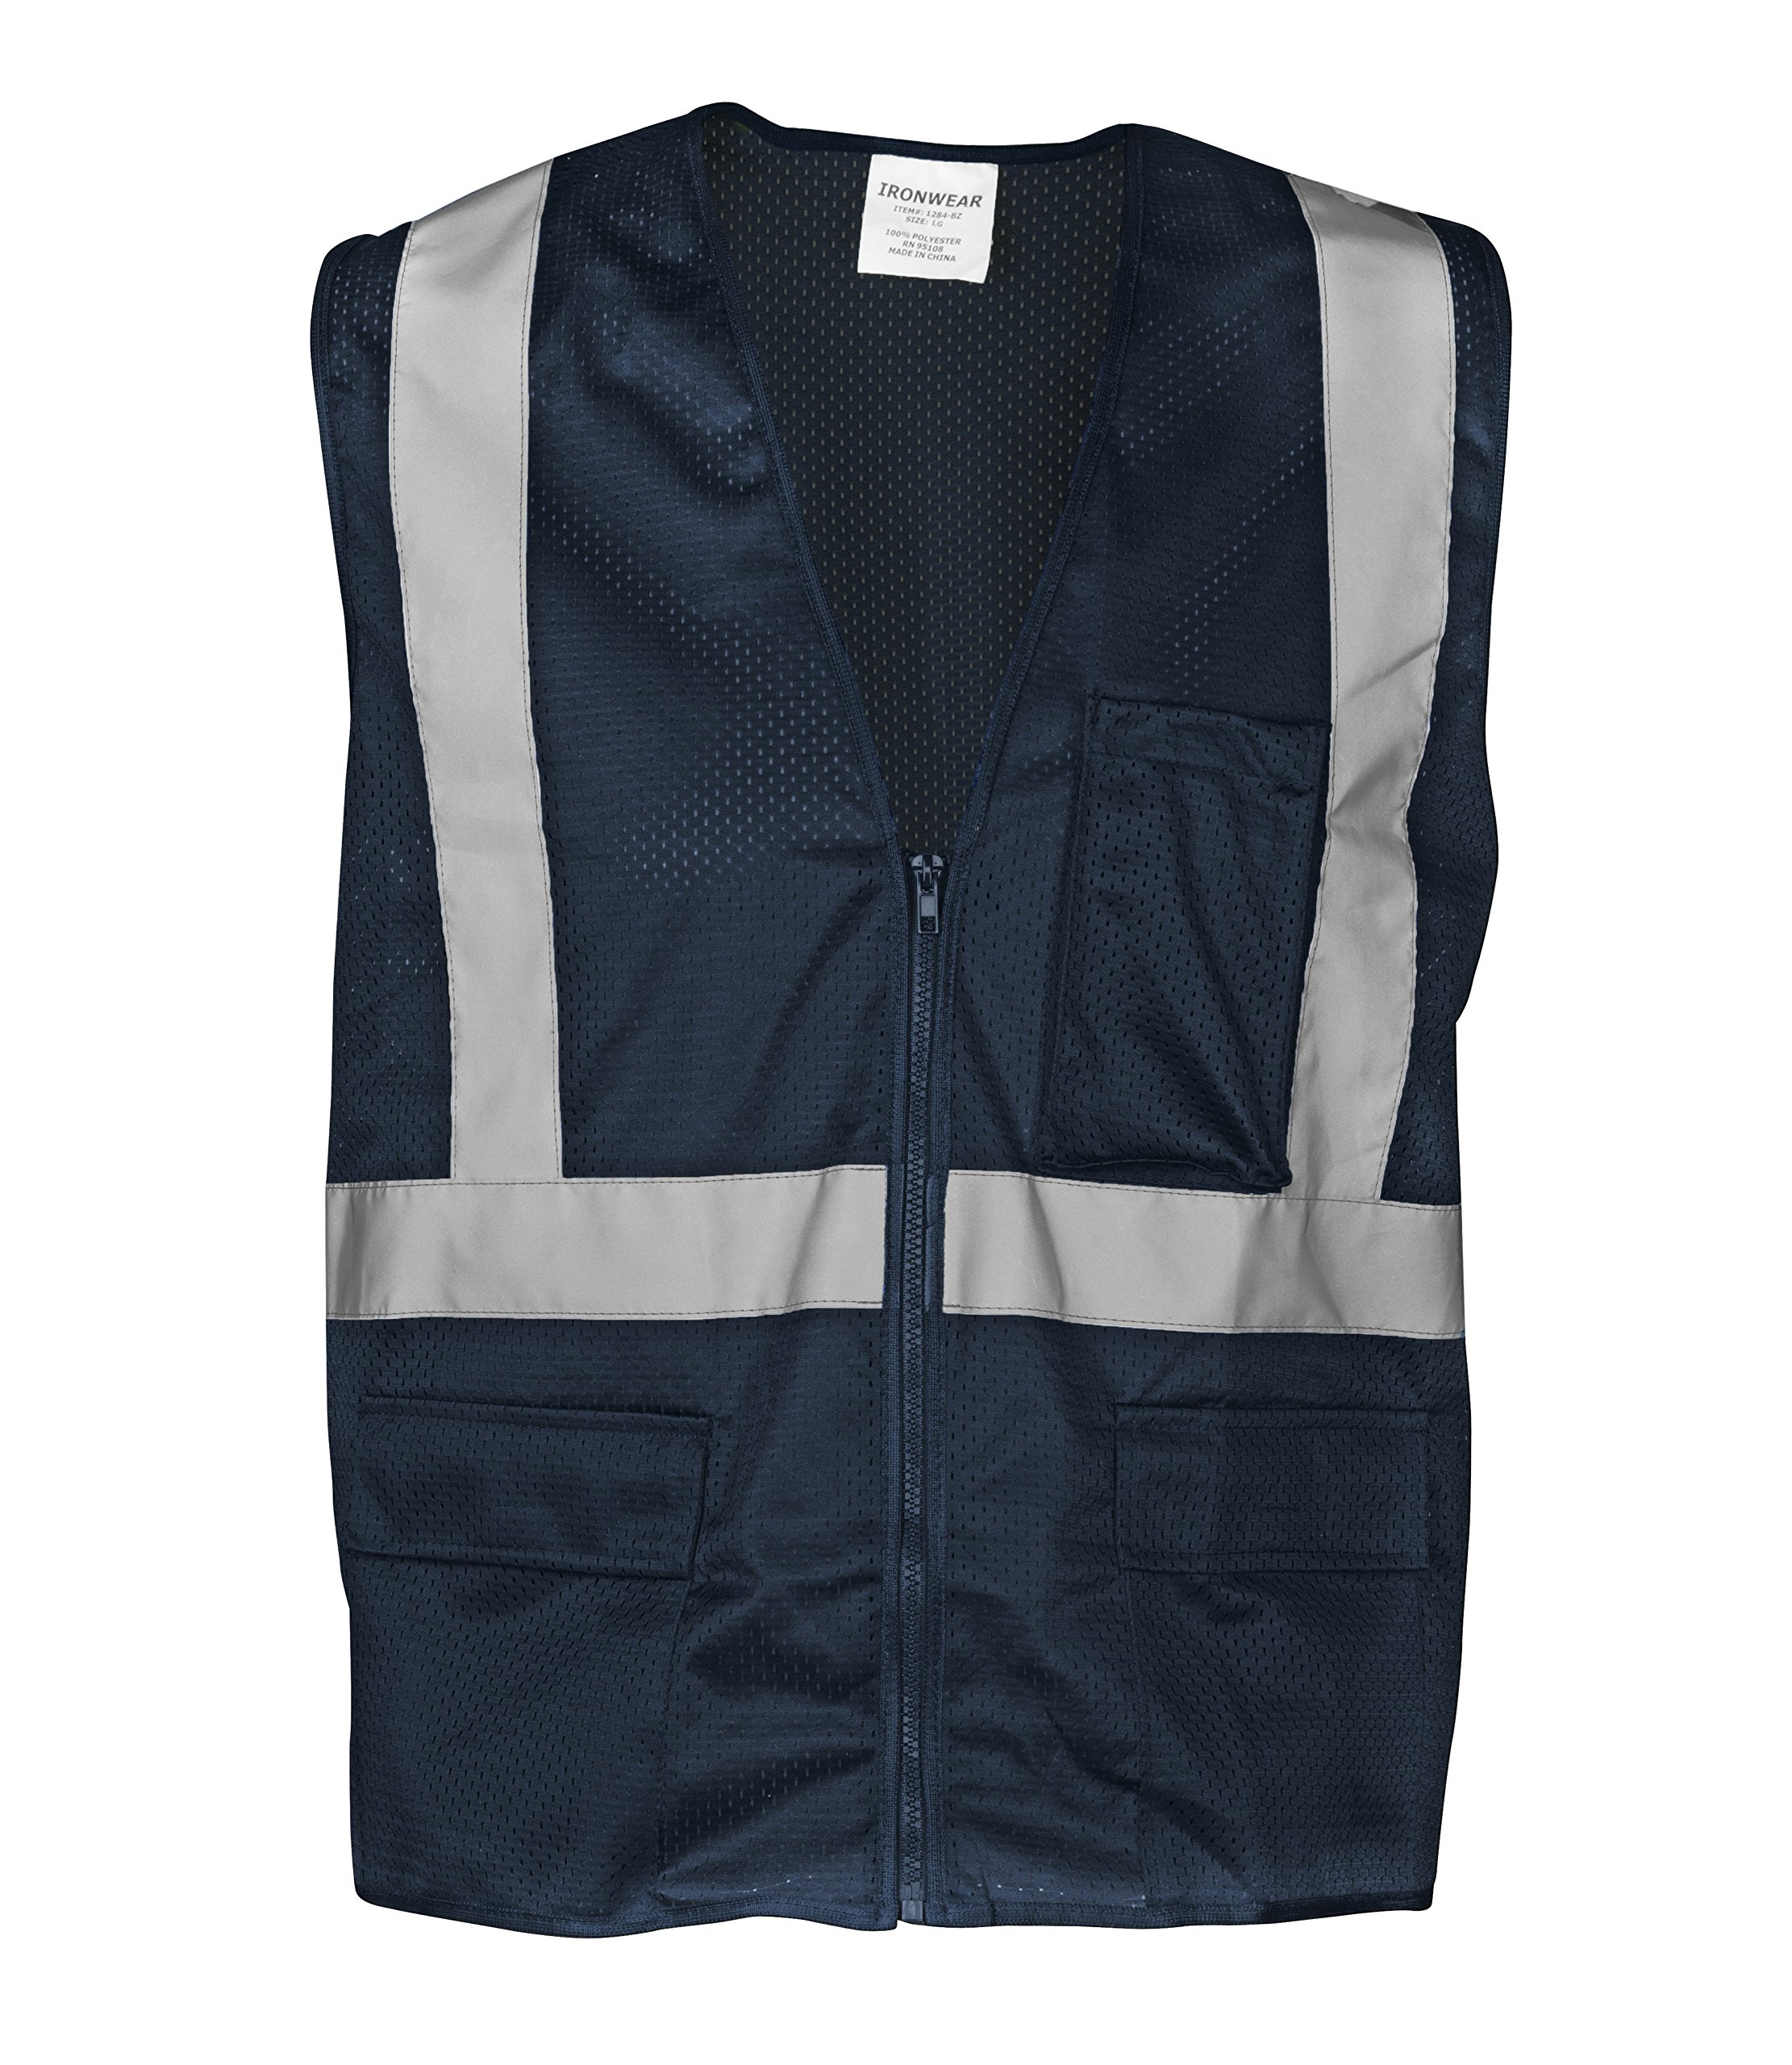 """Ironwear 1284-BZ-3-L Polyester Mesh SAFETY Vest with Zipper & 2"""" Silver Reflective Tape, Blue, Large"""